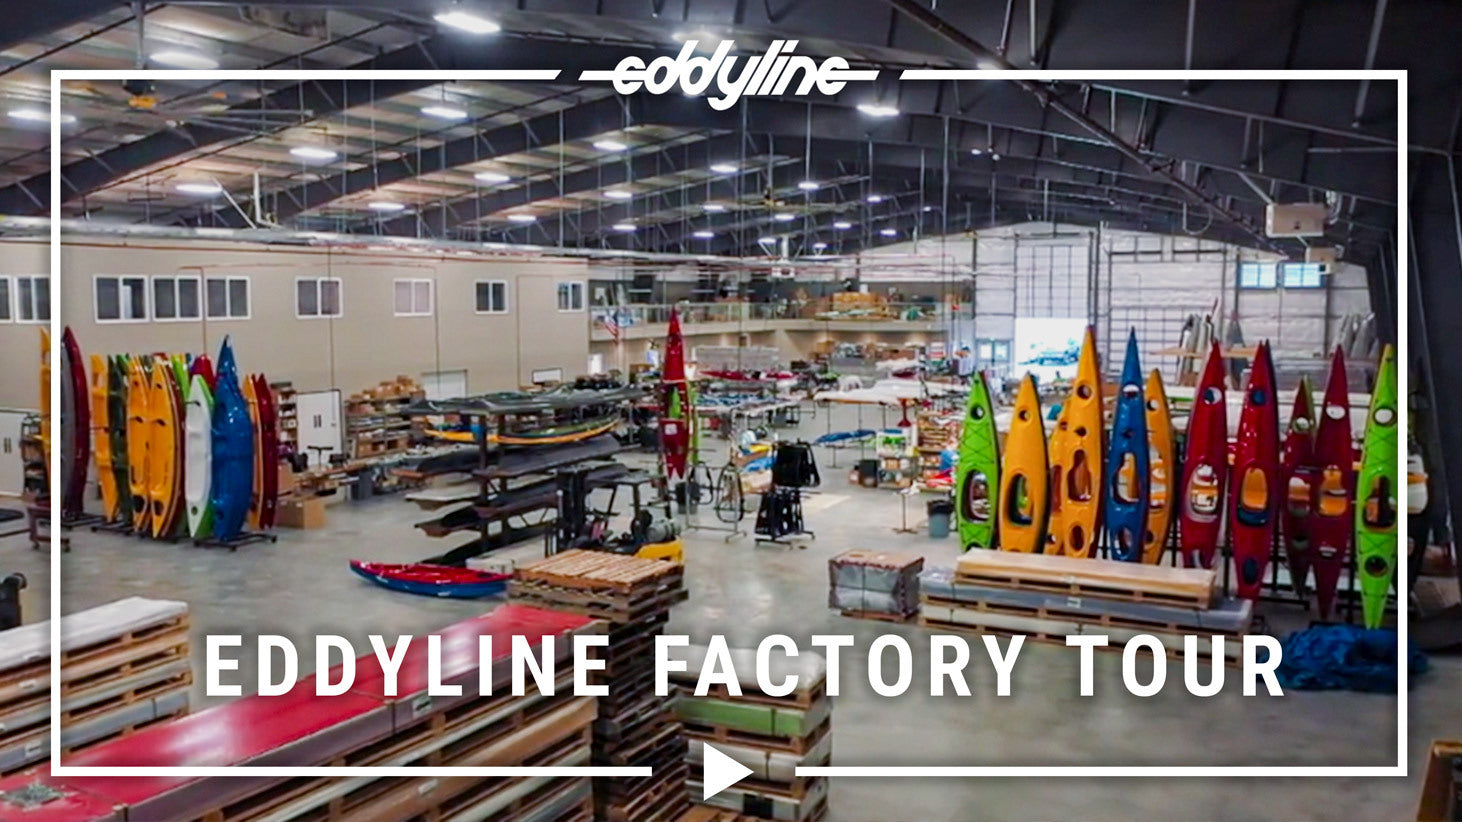 Taking a Tour of the Eddyline Factory